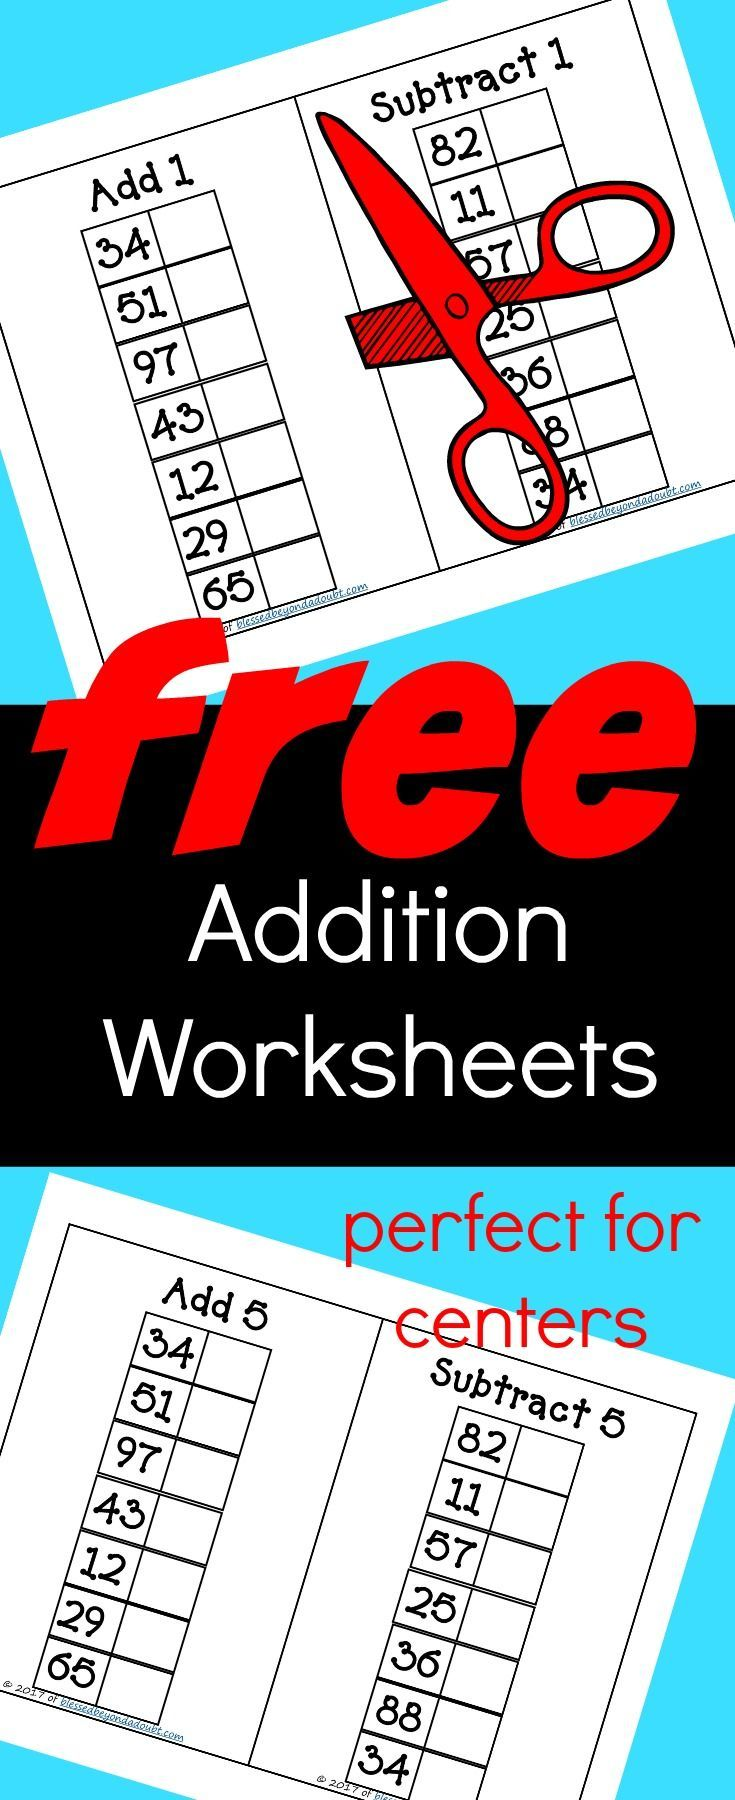 Math Coloring Worksheets For 2nd Grade Word Best  Homeschool Worksheets Ideas On Pinterest  Free  A An The Worksheets Pdf with School Bus Worksheet Pdf Free Addition And Subtraction Worksheets Homeschool Worksheetshomeschool   Equivalent Measures Worksheet